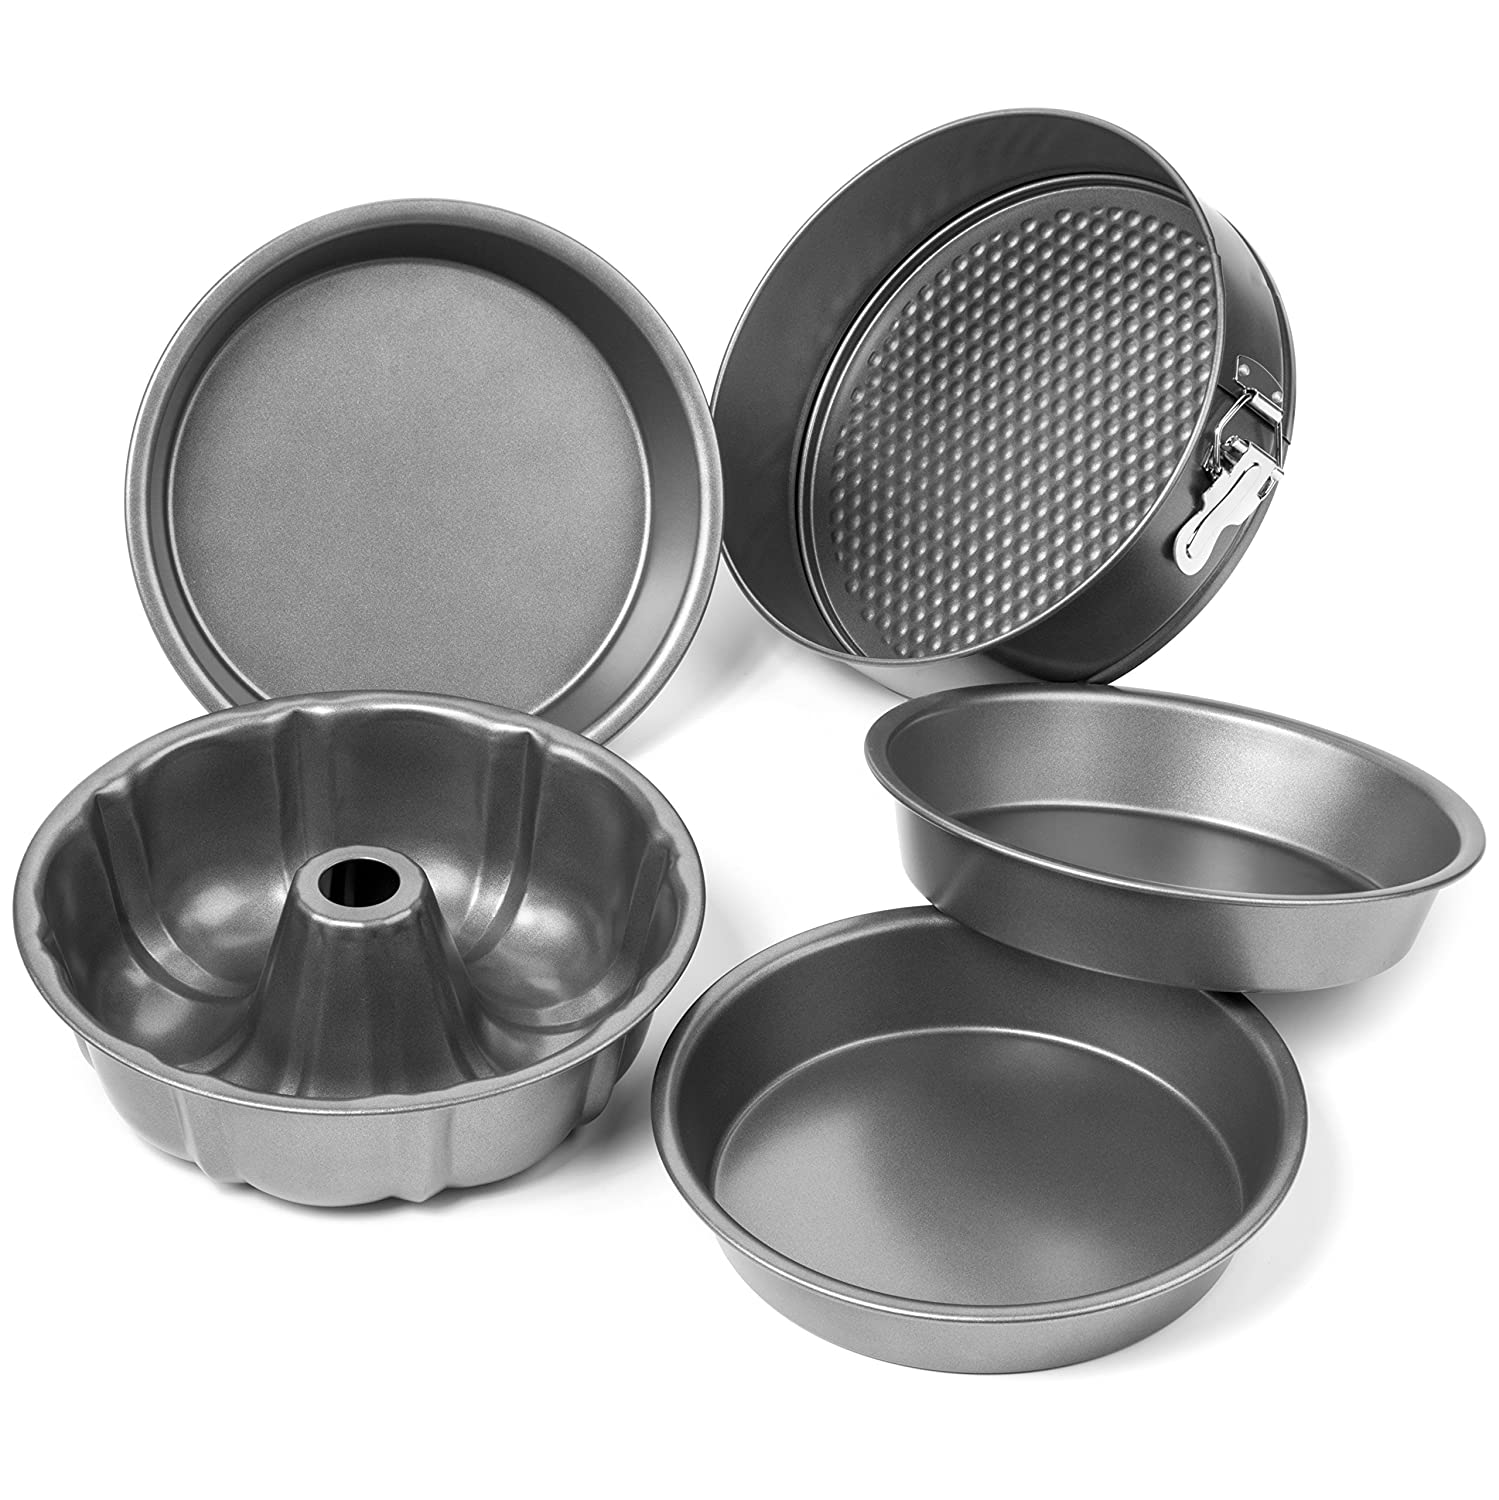 Elite Bakeware 5 Piece Nonstick Cake Pans Set with 9 Inch Round Cake Pans  9 Inch Spring form Cake Pan and 10 In Bundt Cake Pan